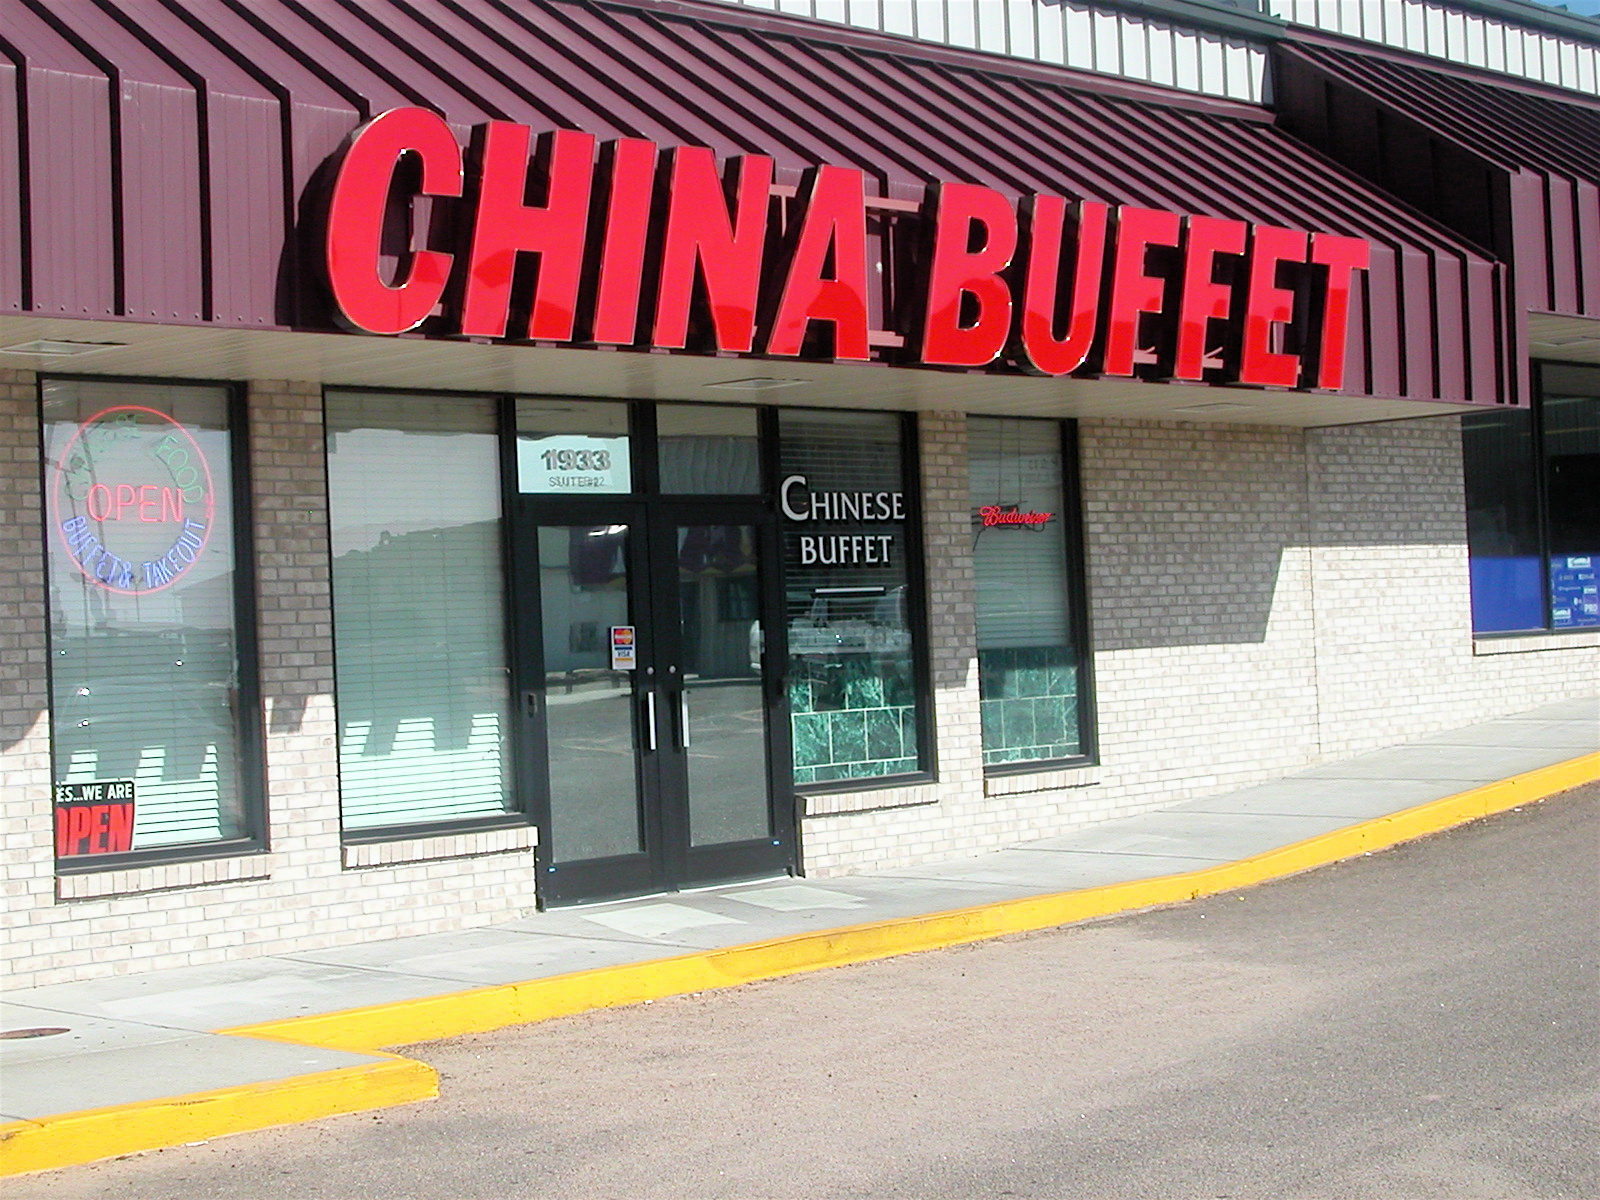 China_buffet.JPG_(1278928582)